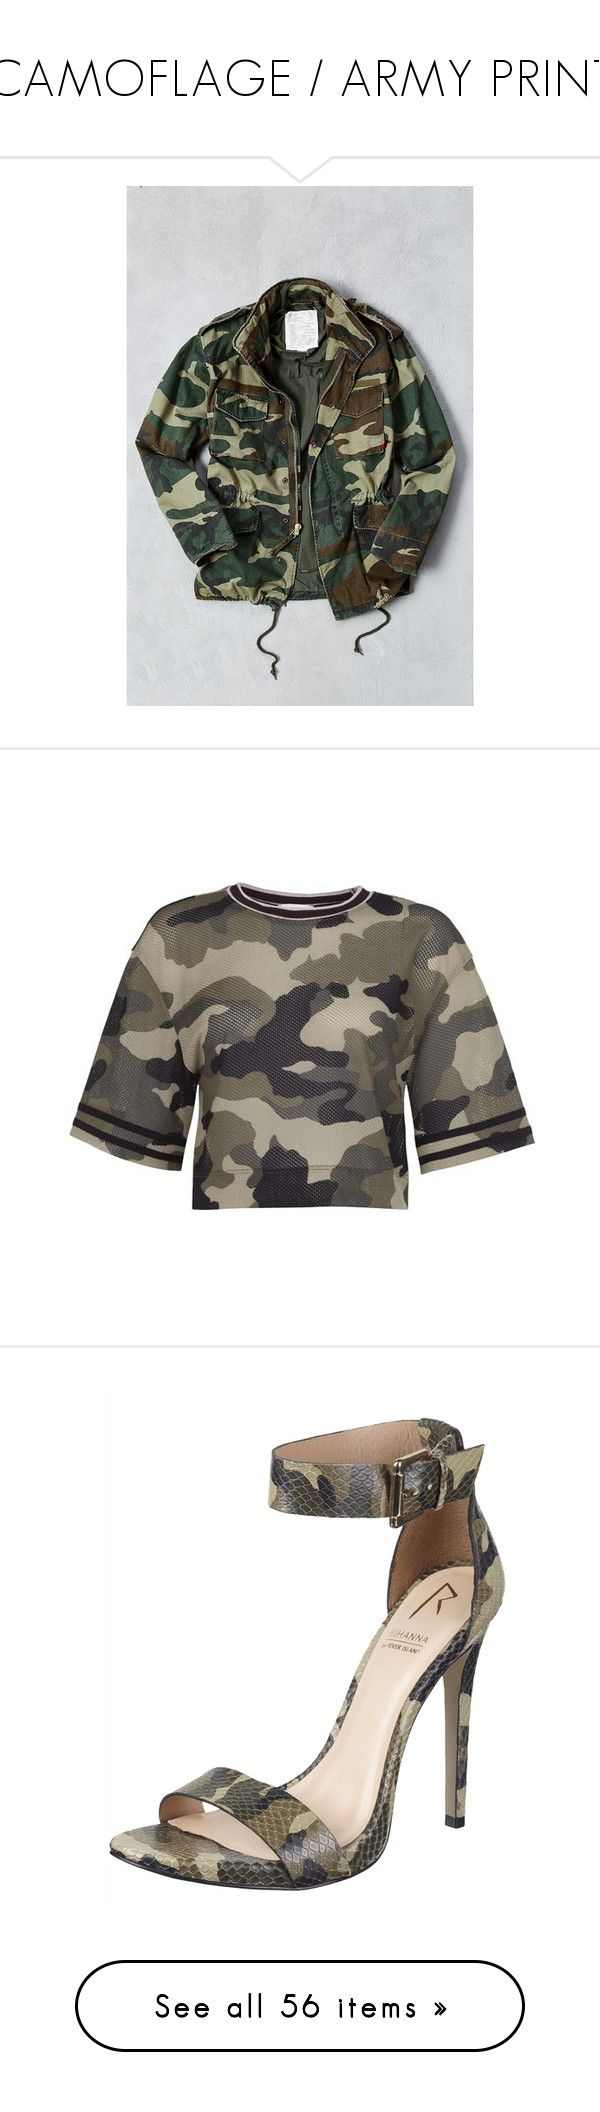 """CAMOFLAGE / ARMY PRINT"" by outfitsbyrubiered ❤ liked on Polyvore featuring men's fashion, men's clothing, men's outerwear, men's jackets, mens army green jacket, mens camouflage jacket, mens cotton jacket, mens olive green military jacket, mens military jacket and tops"